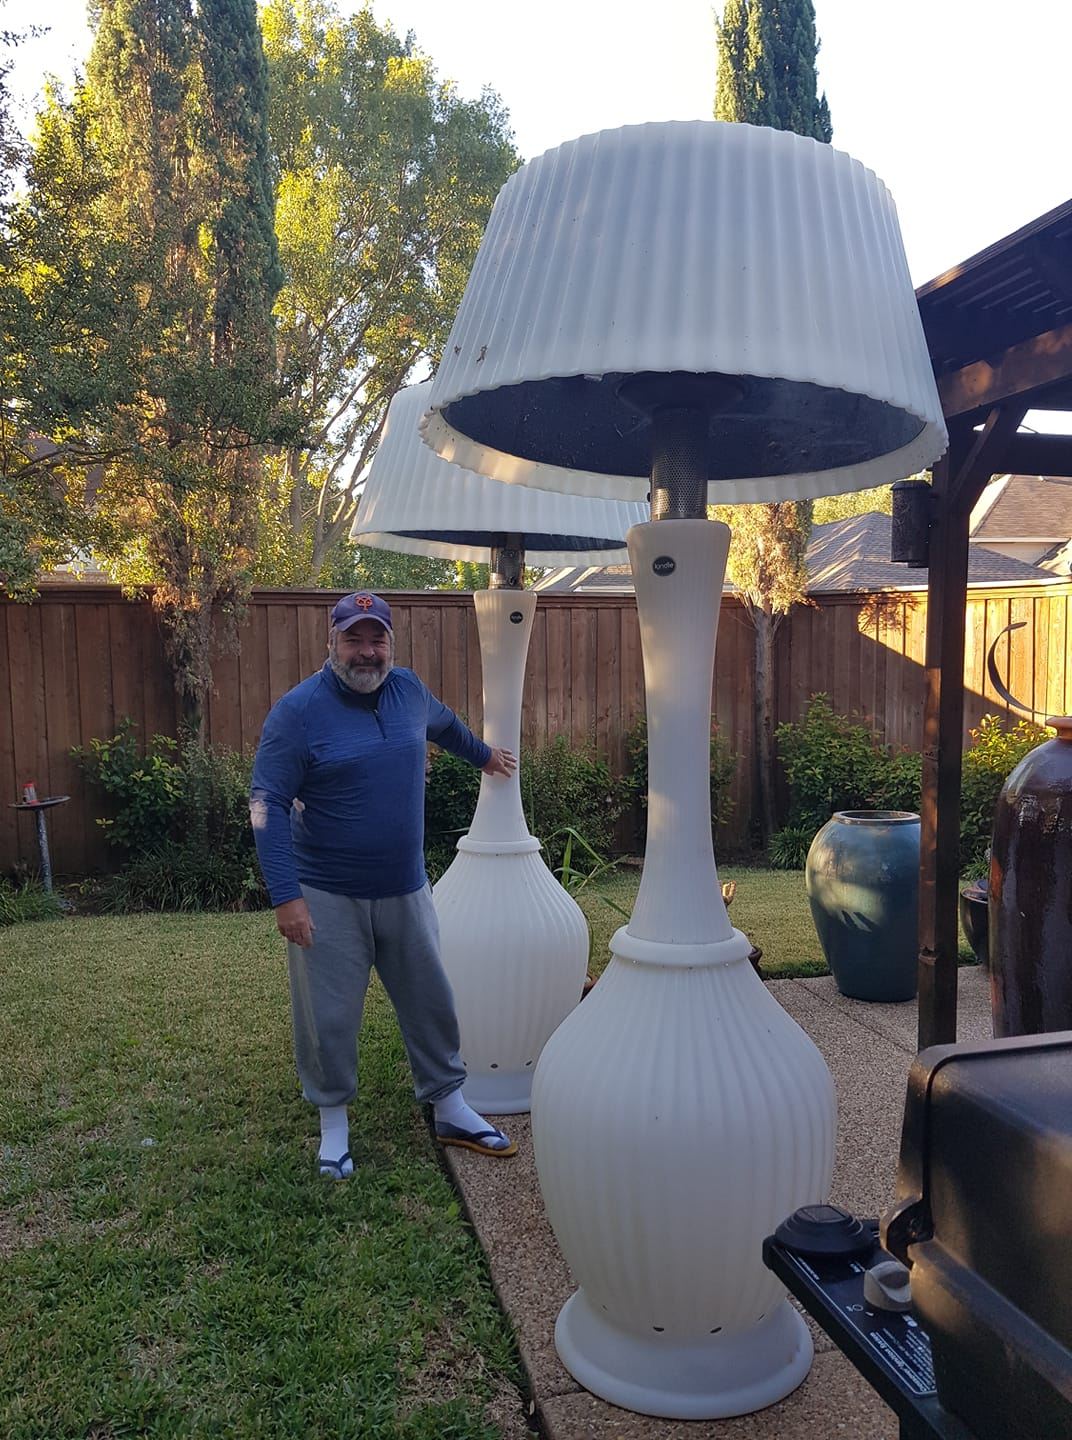 The lamp dad: